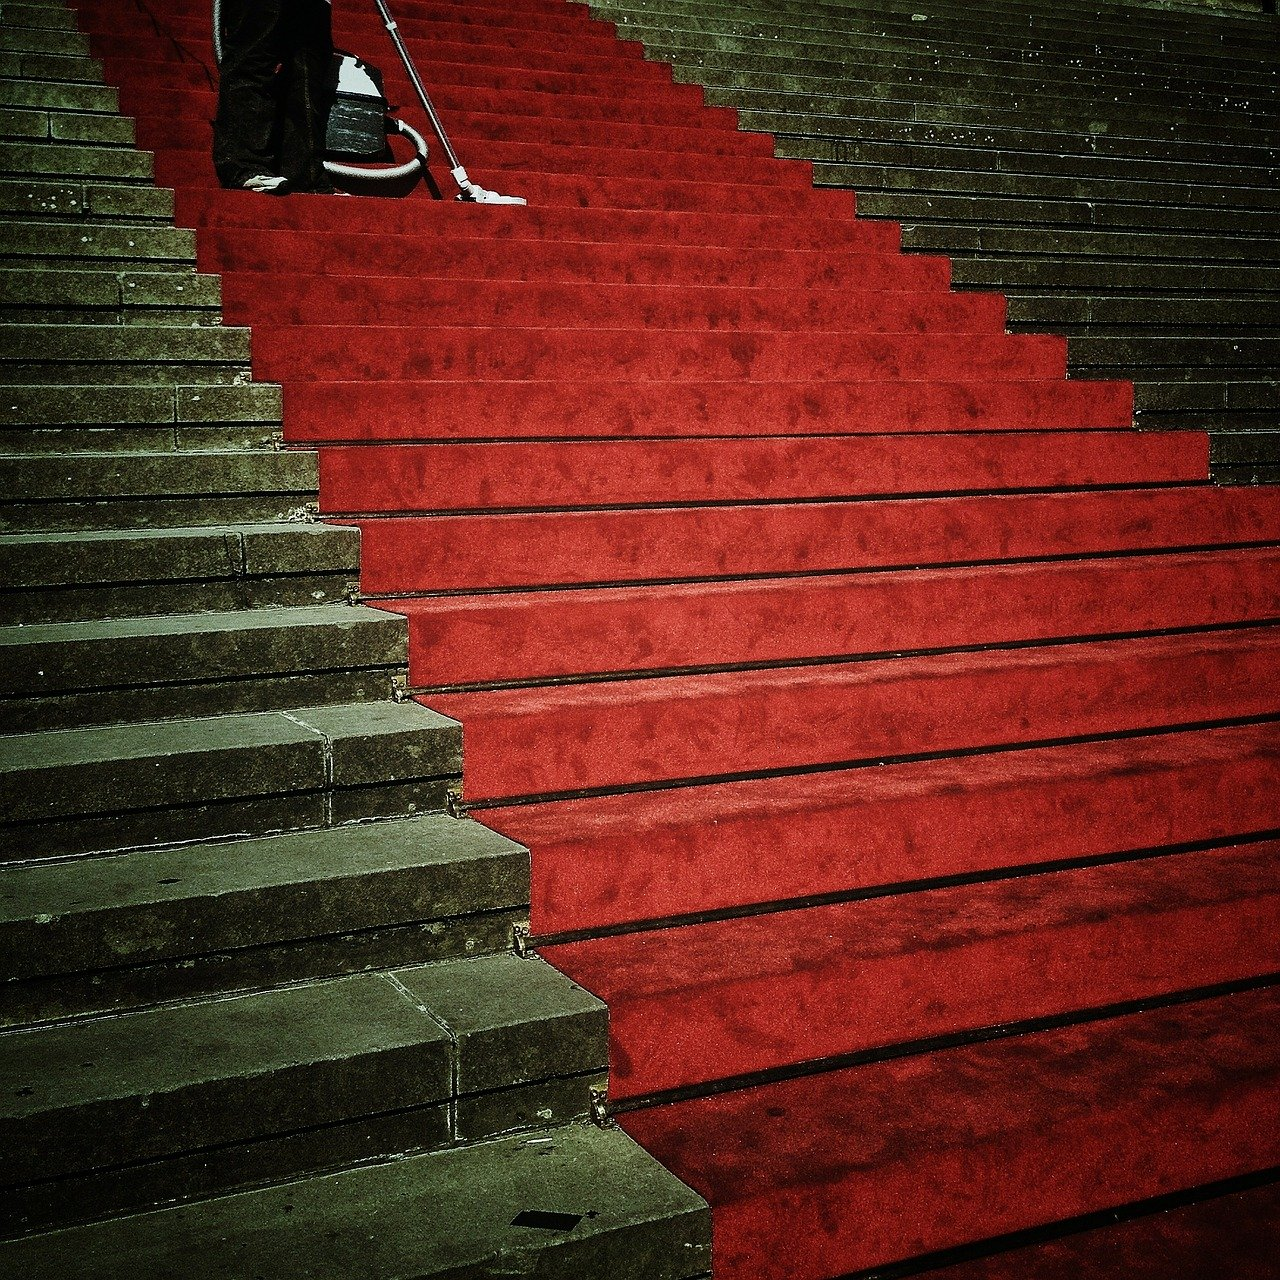 Red carpet stairs